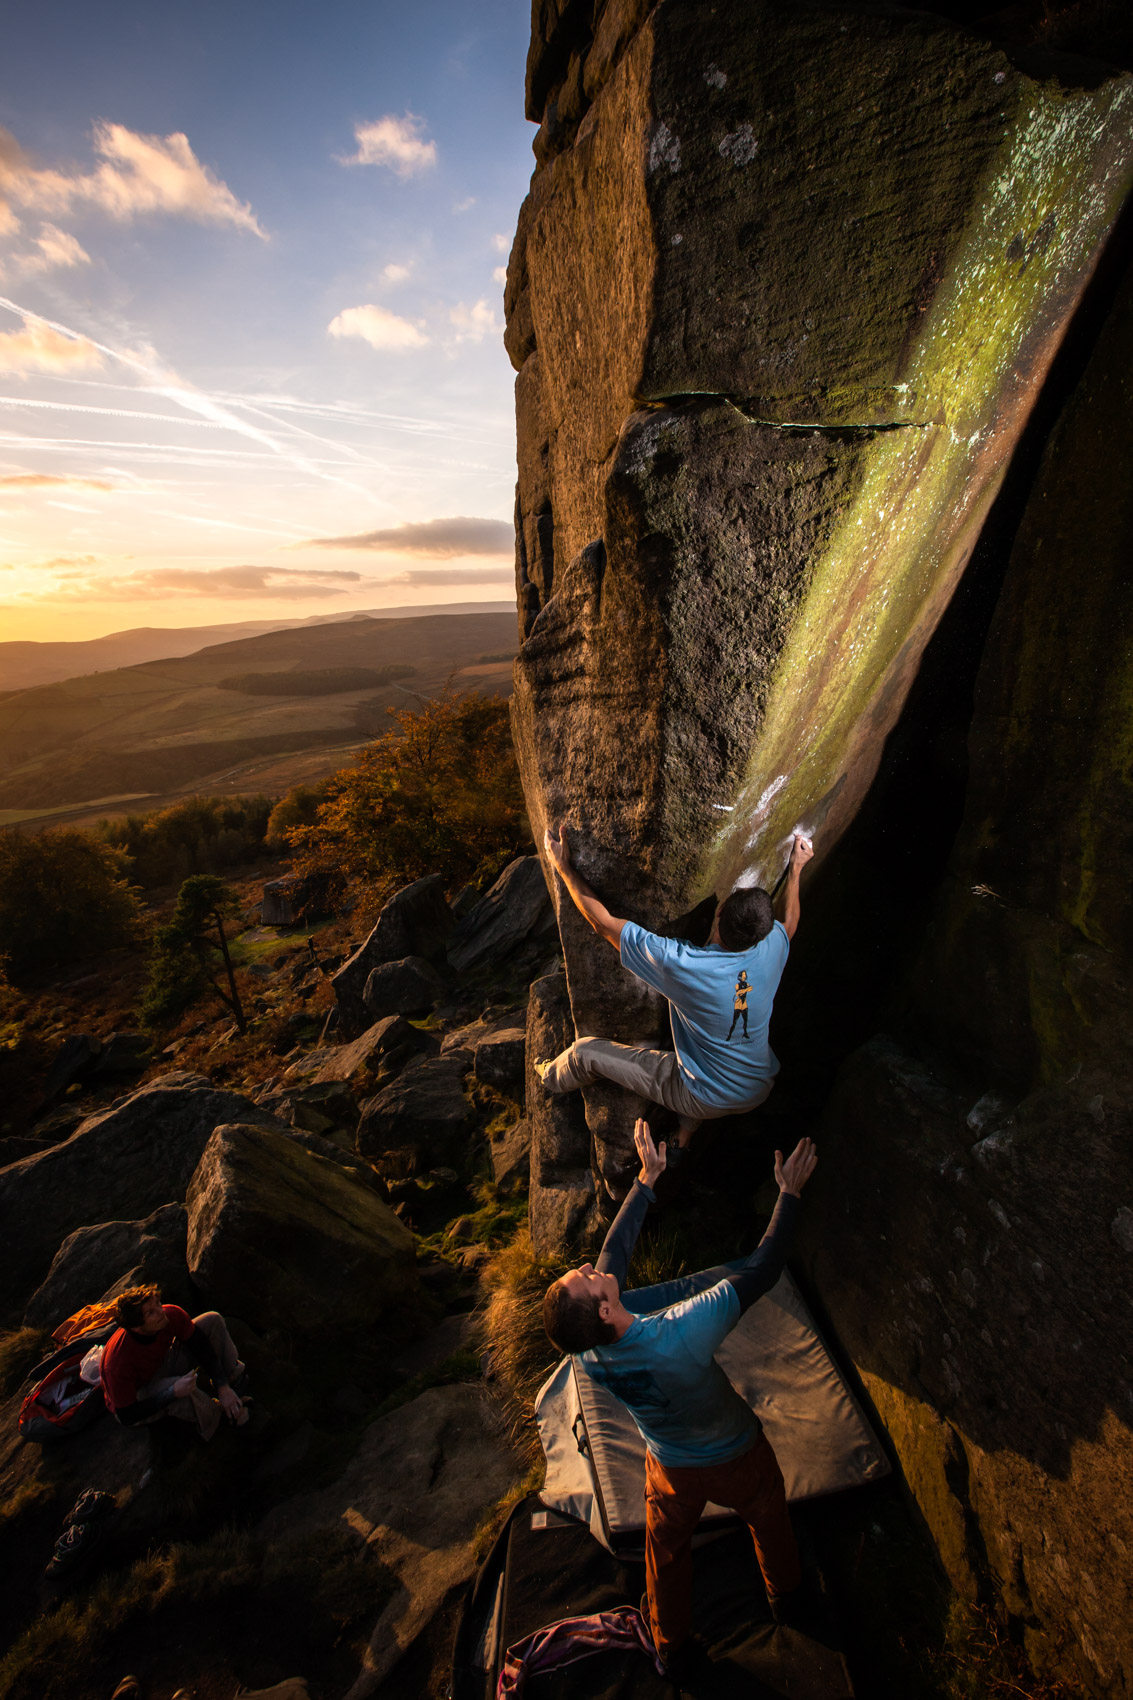 Bouldering at Stanage | Stefan Kuerzi - Climbing Photography